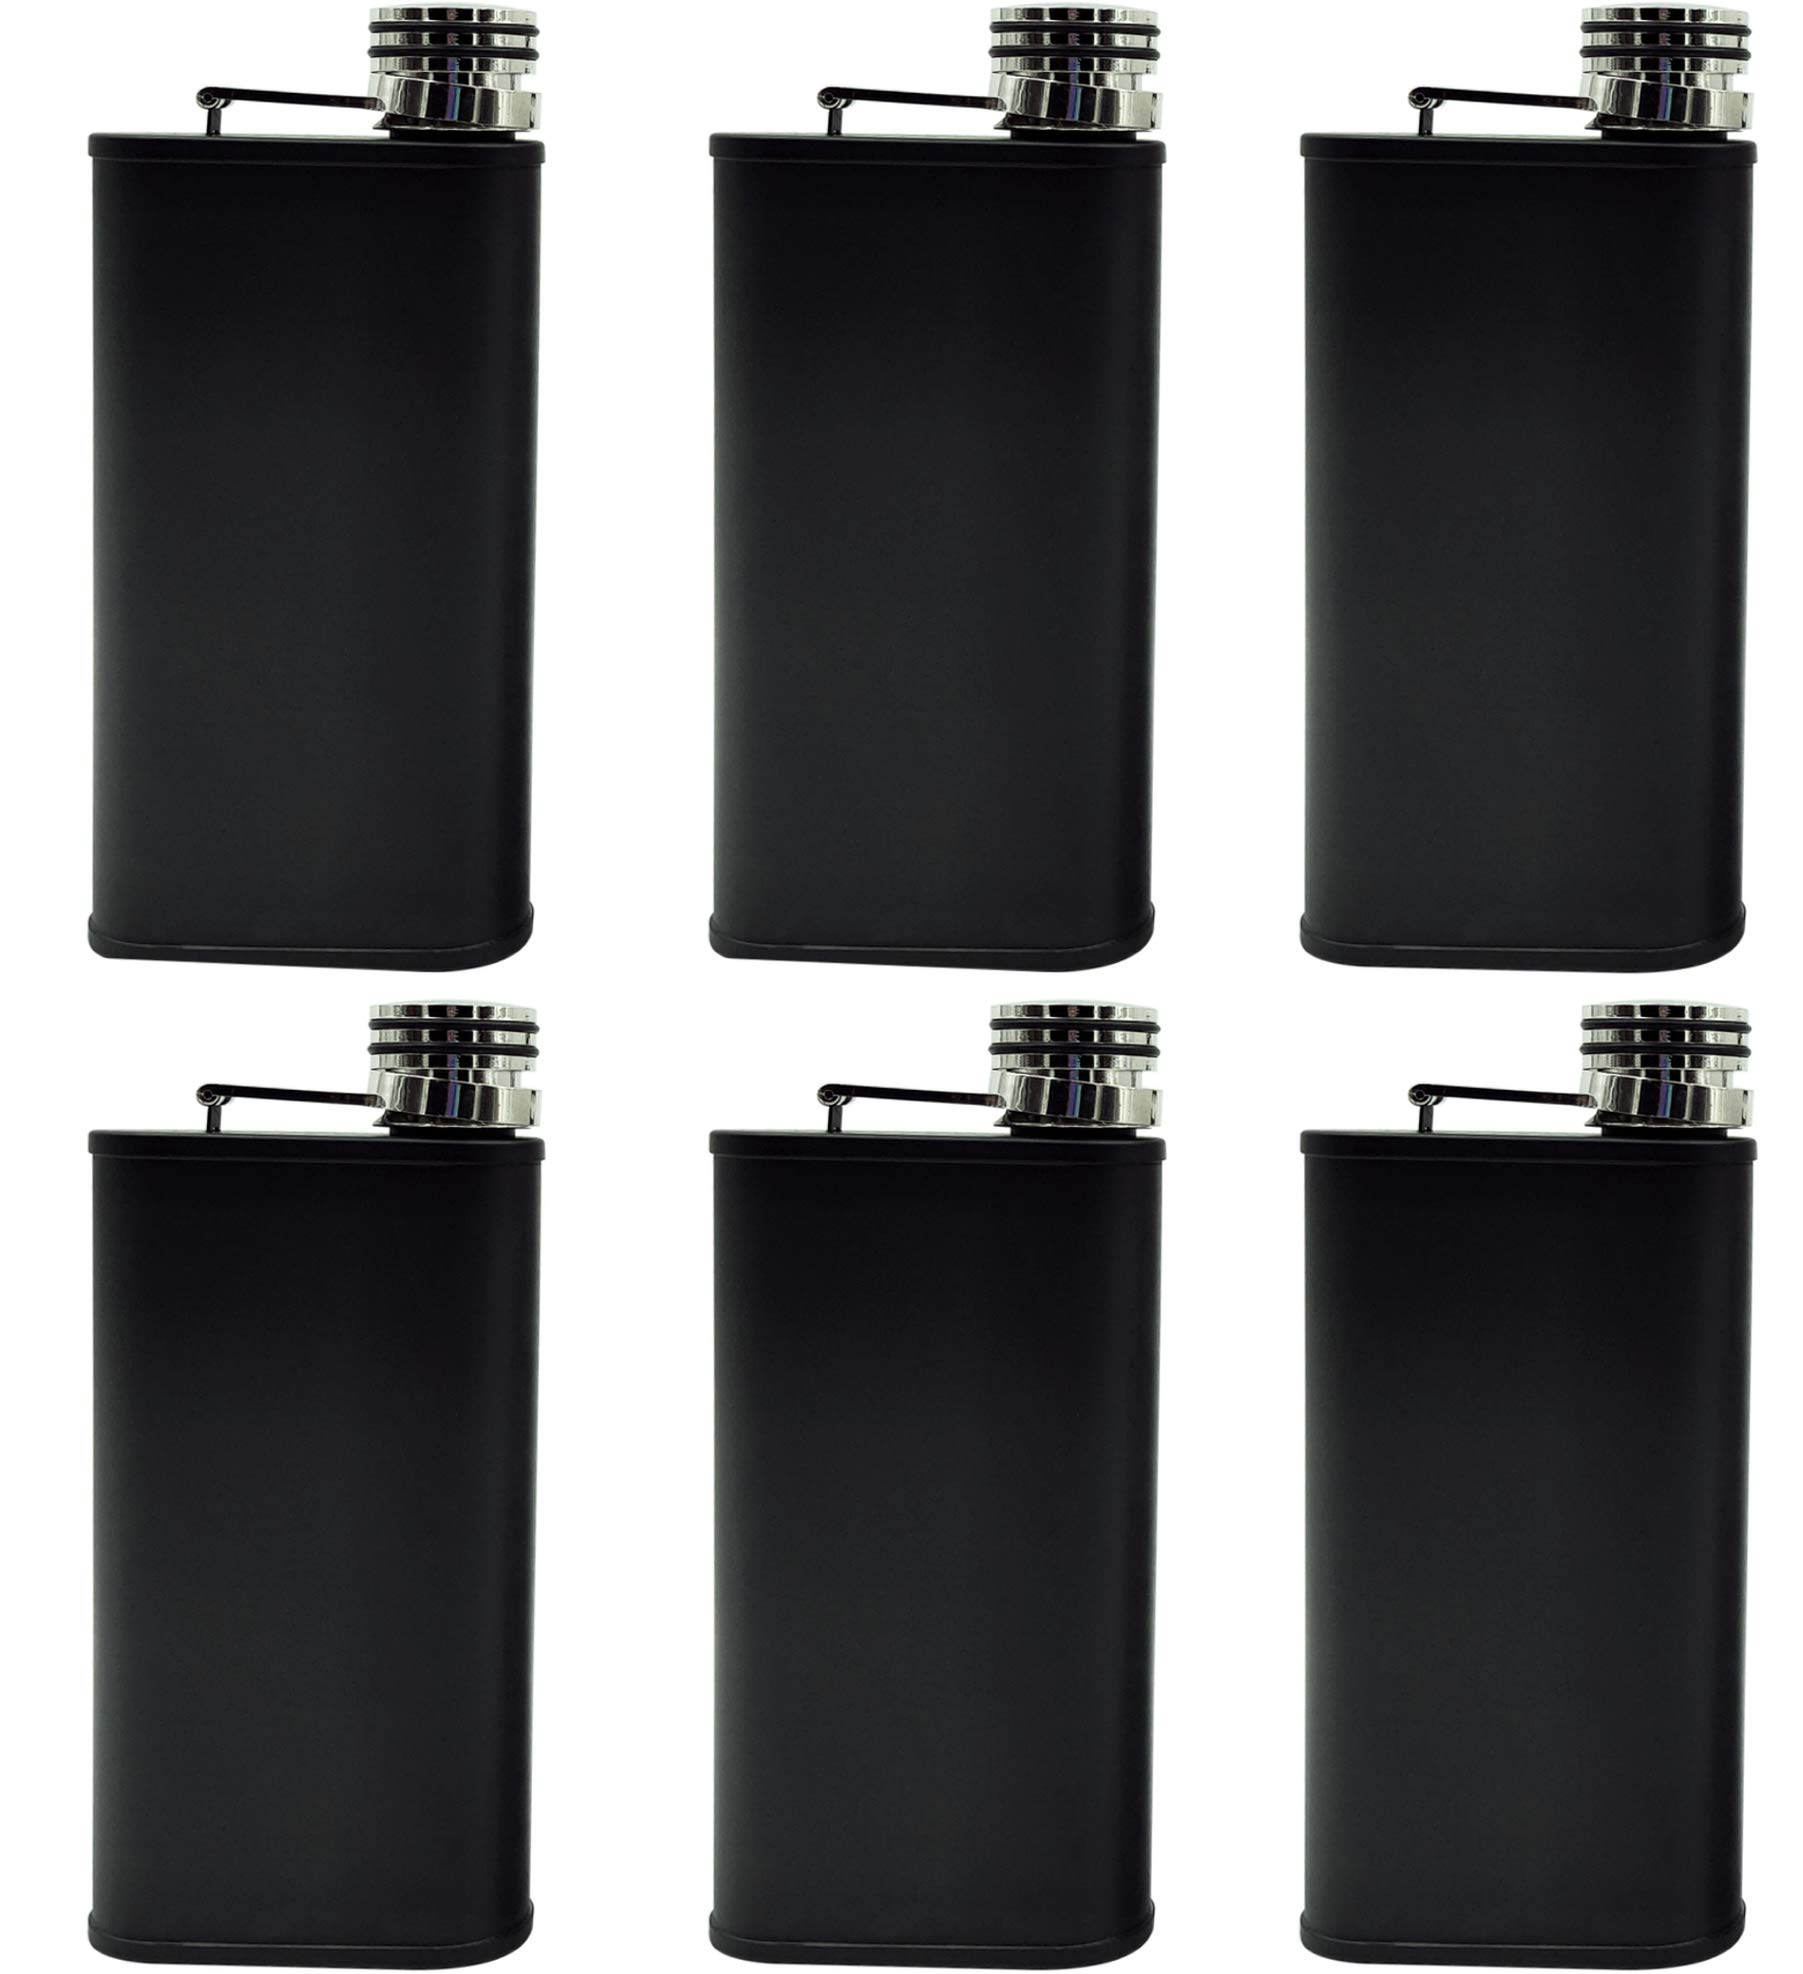 Harland Special 8 oz Groomsmen Gift 6 pk Set Stainless Steel Hip Flask can be Engraveable personalized perfect for wedding groomsman party gifts box ideas mens Matte Black Pocket Flasks (Raven Black) by Harland